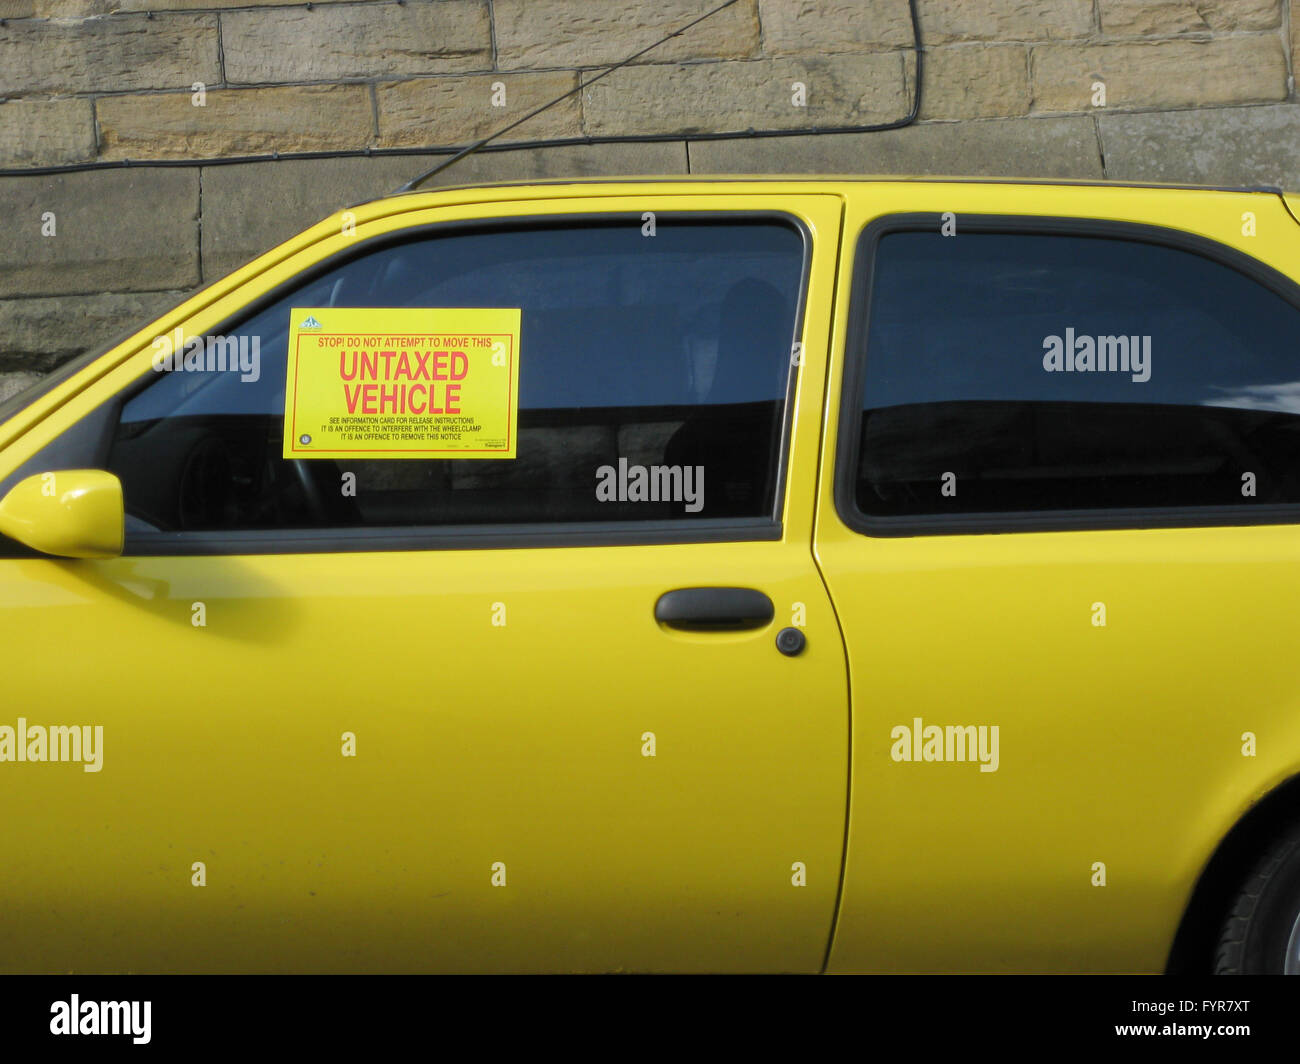 A Small Yellow Car With Dvla Untaxed Vehicle Notice In The Front